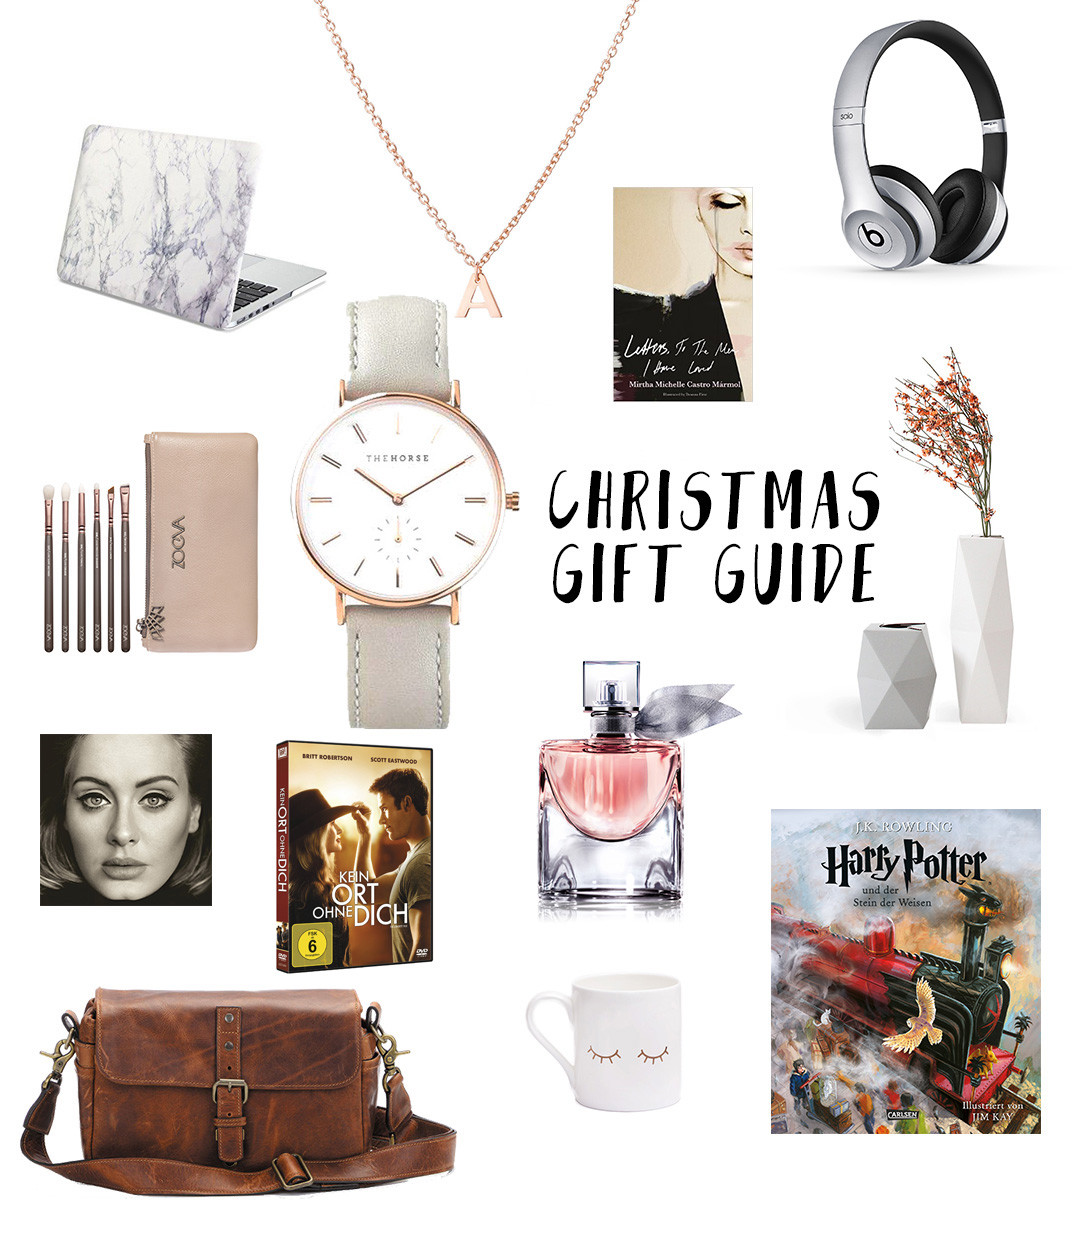 Gift Guide Inspiration